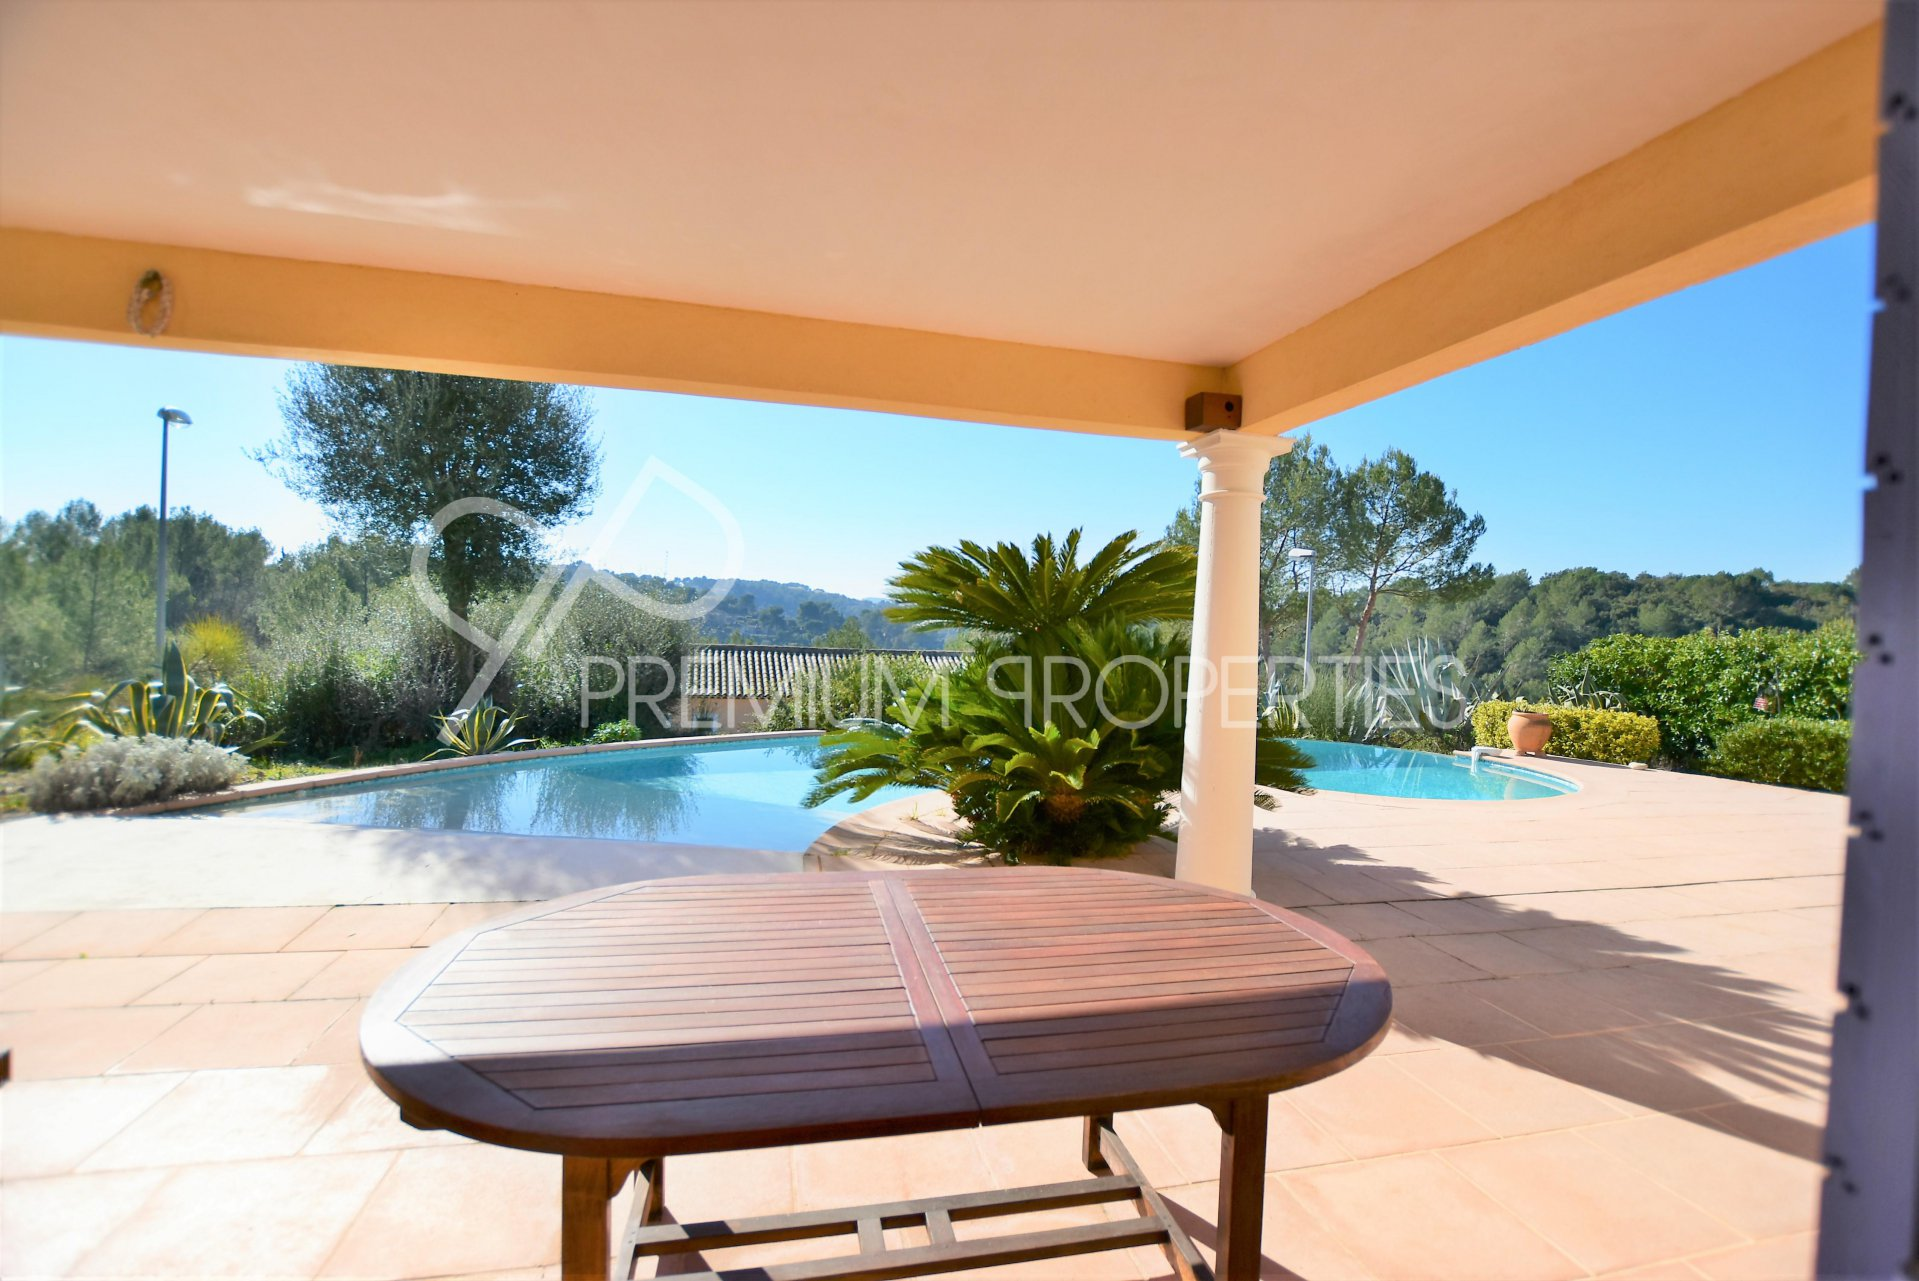 BIOT - ONE STOREY VILLA WITH PANORAMIC VIEW